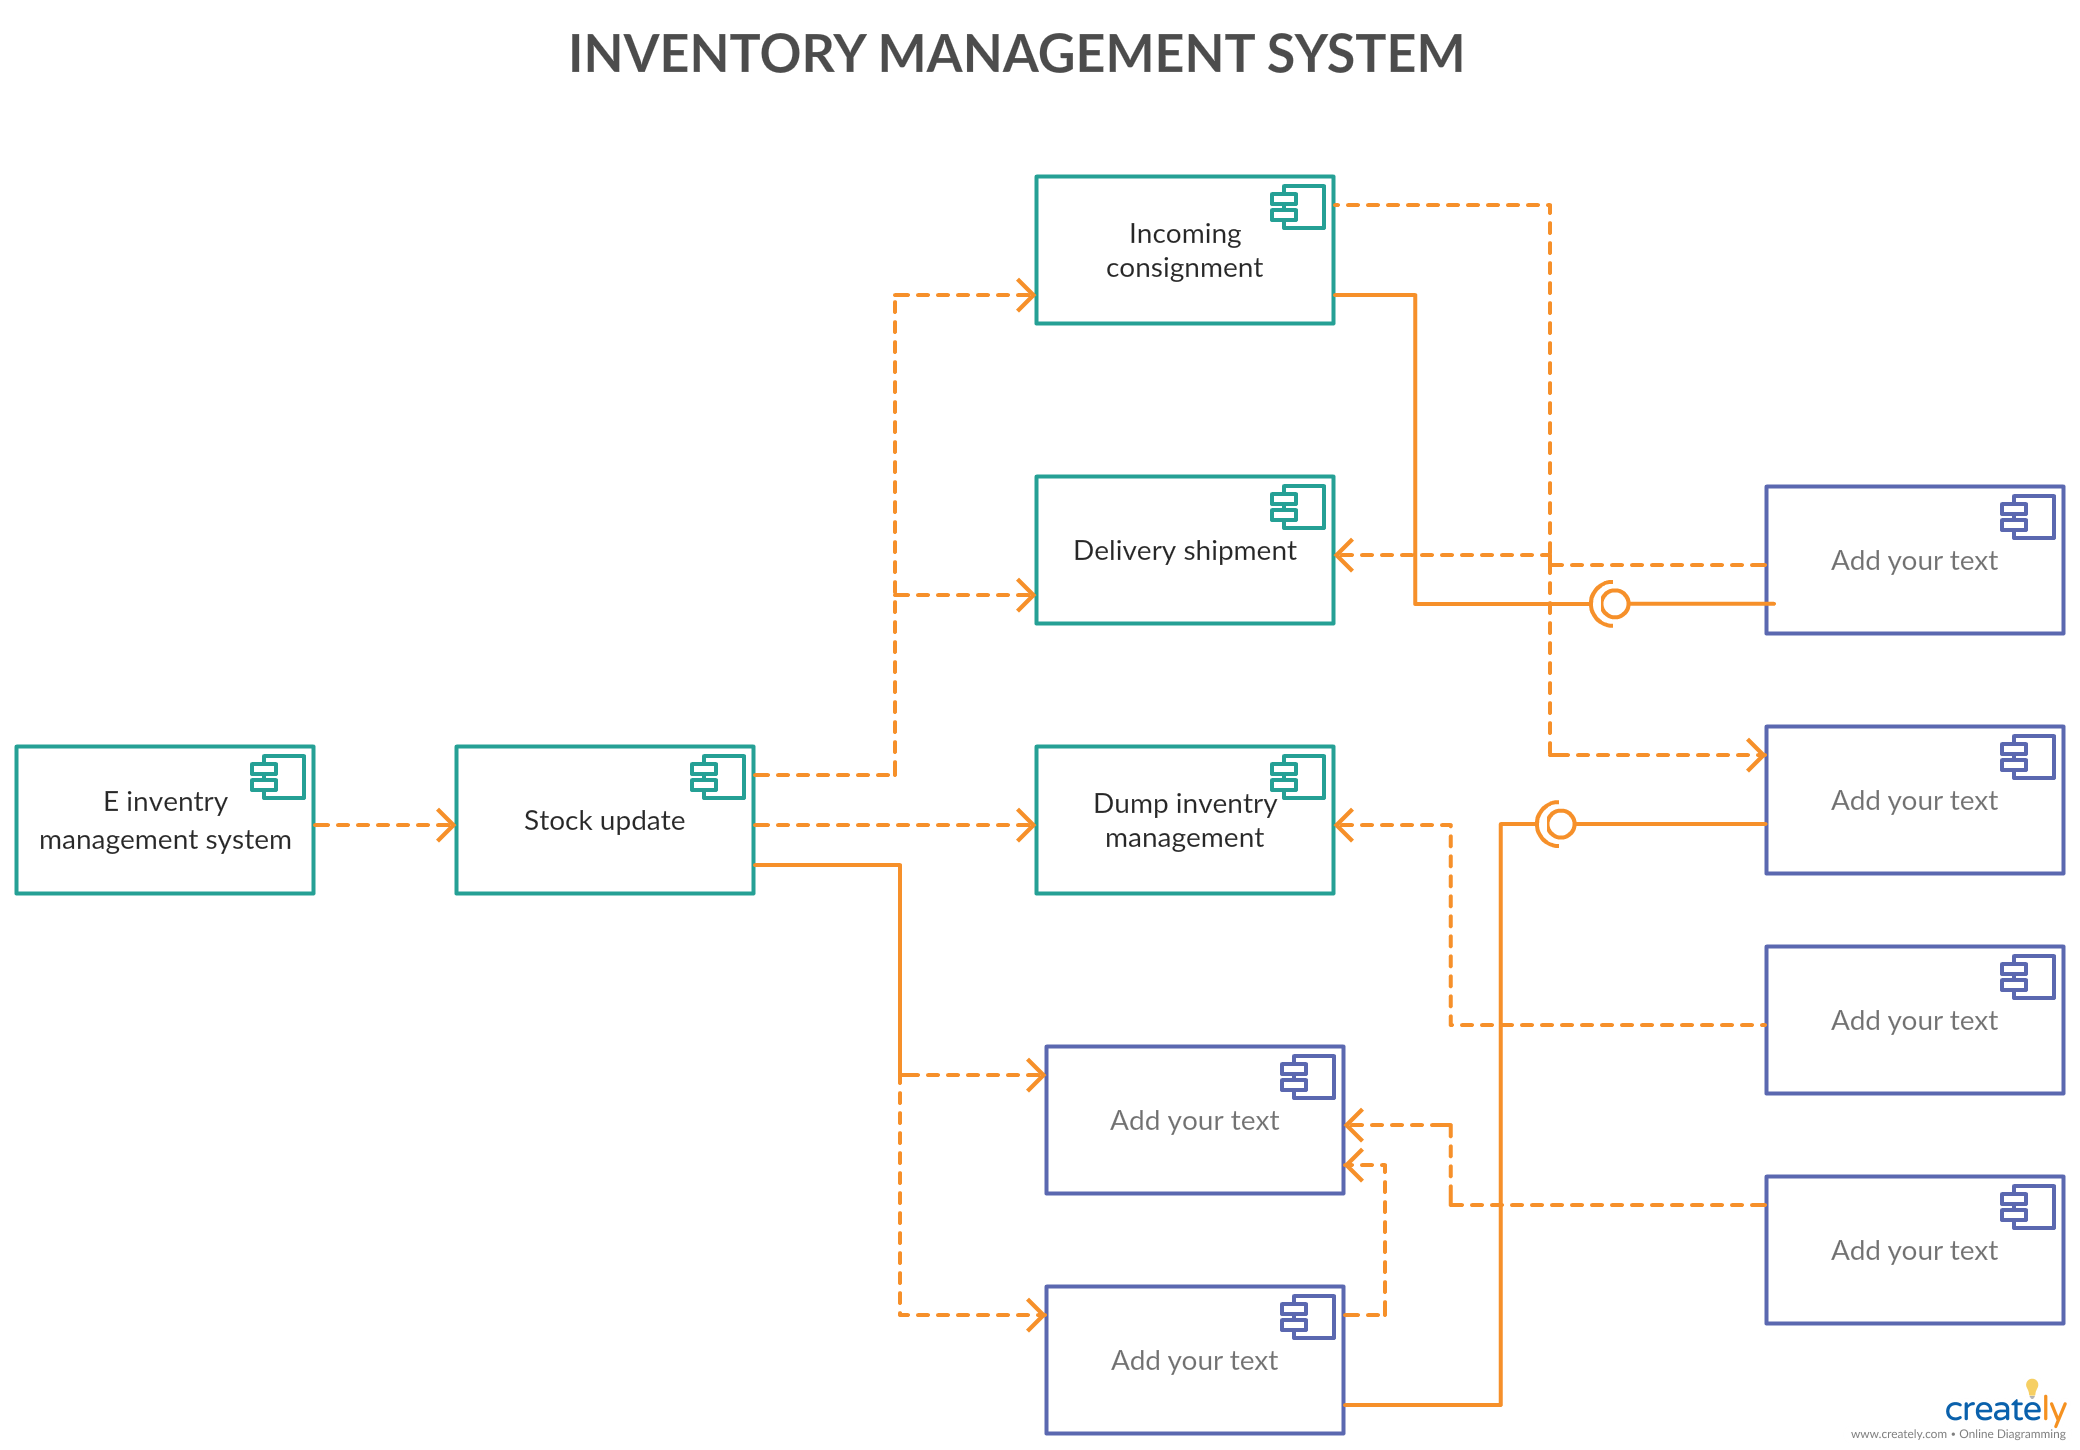 Component Diagram for Inventory Management System - You can